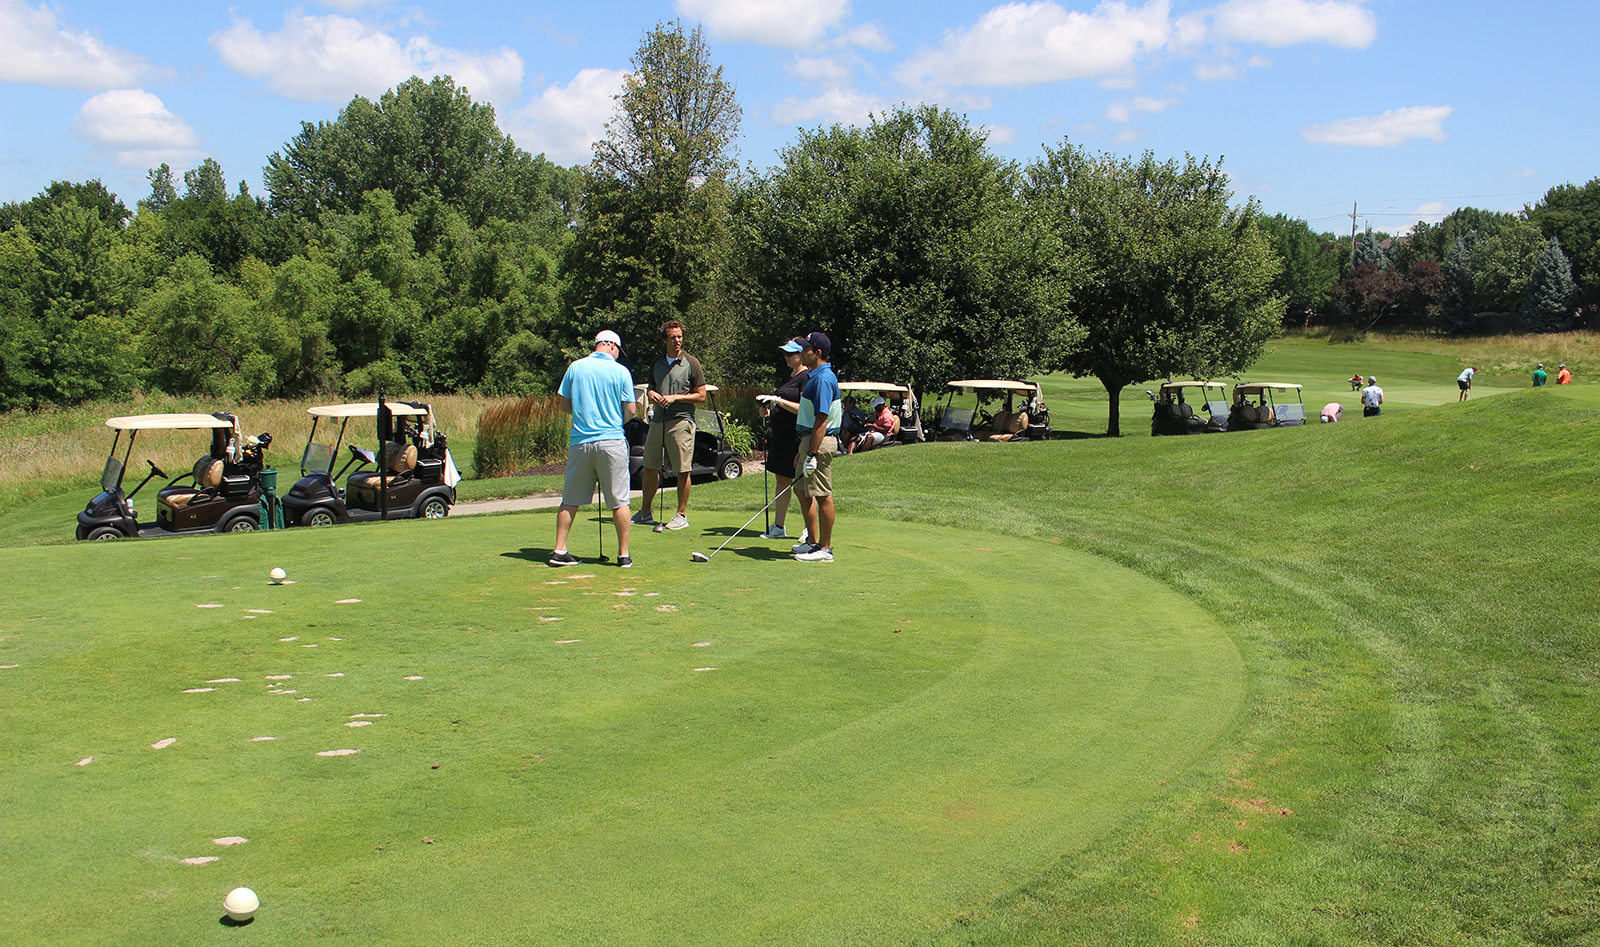 Monday was a perfect day to hit the links for the Omaha Bar Association Field Day, held at Champions Run. Foursomes spent the afternoon golfing, socializing, talking shop and enjoying beverages while temperatures were just shy of 80 degrees. (Photo by Scott Stewart)